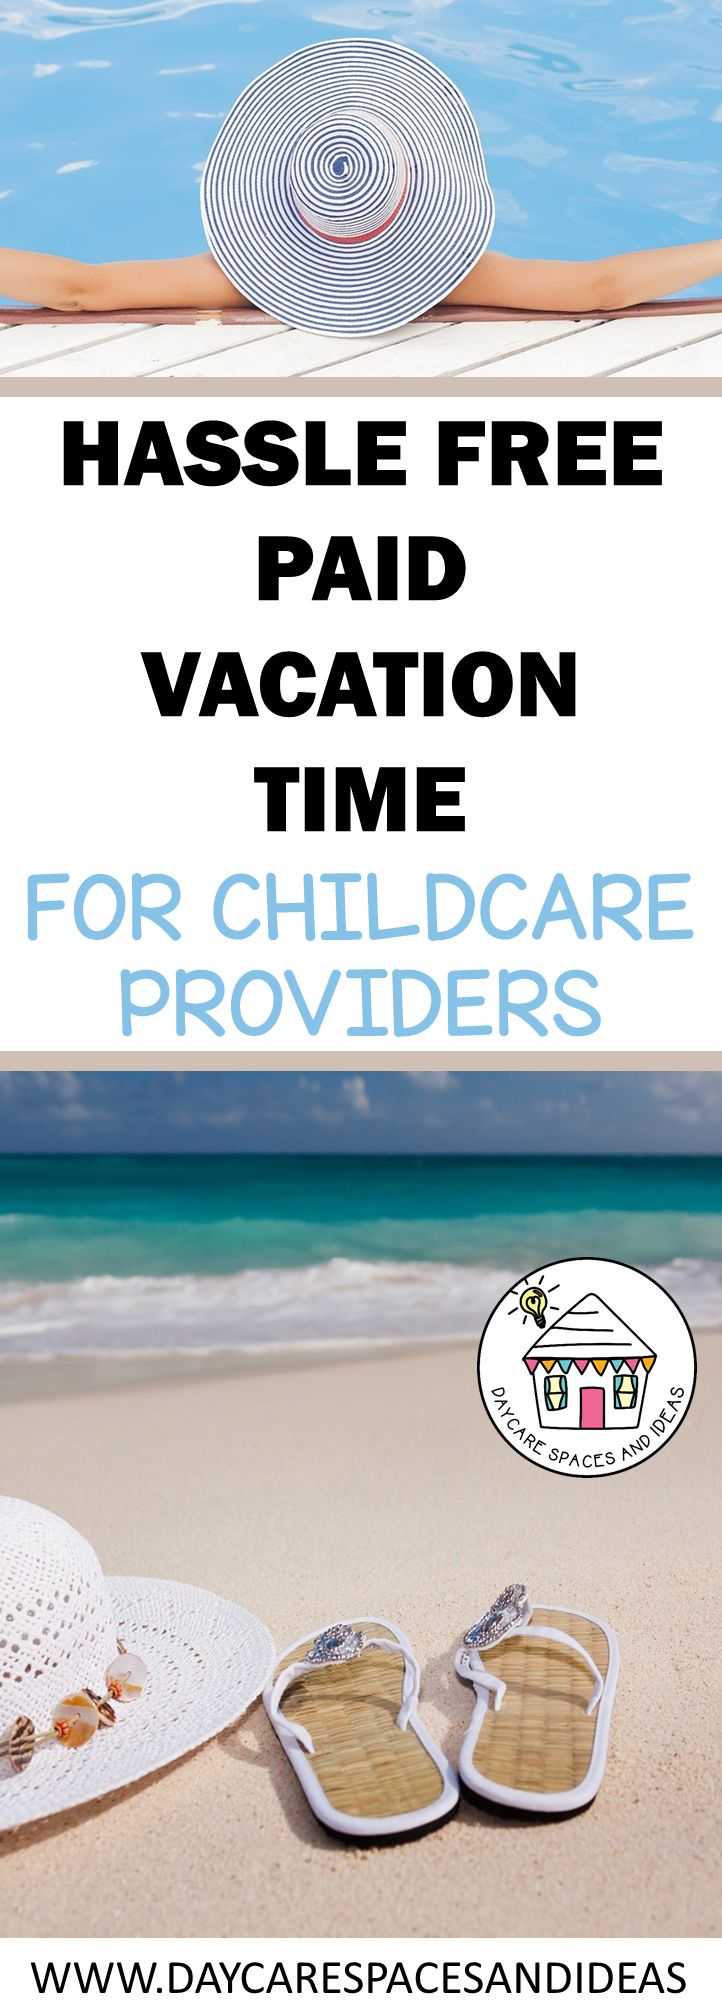 Daycare providers deserve paid time off too!